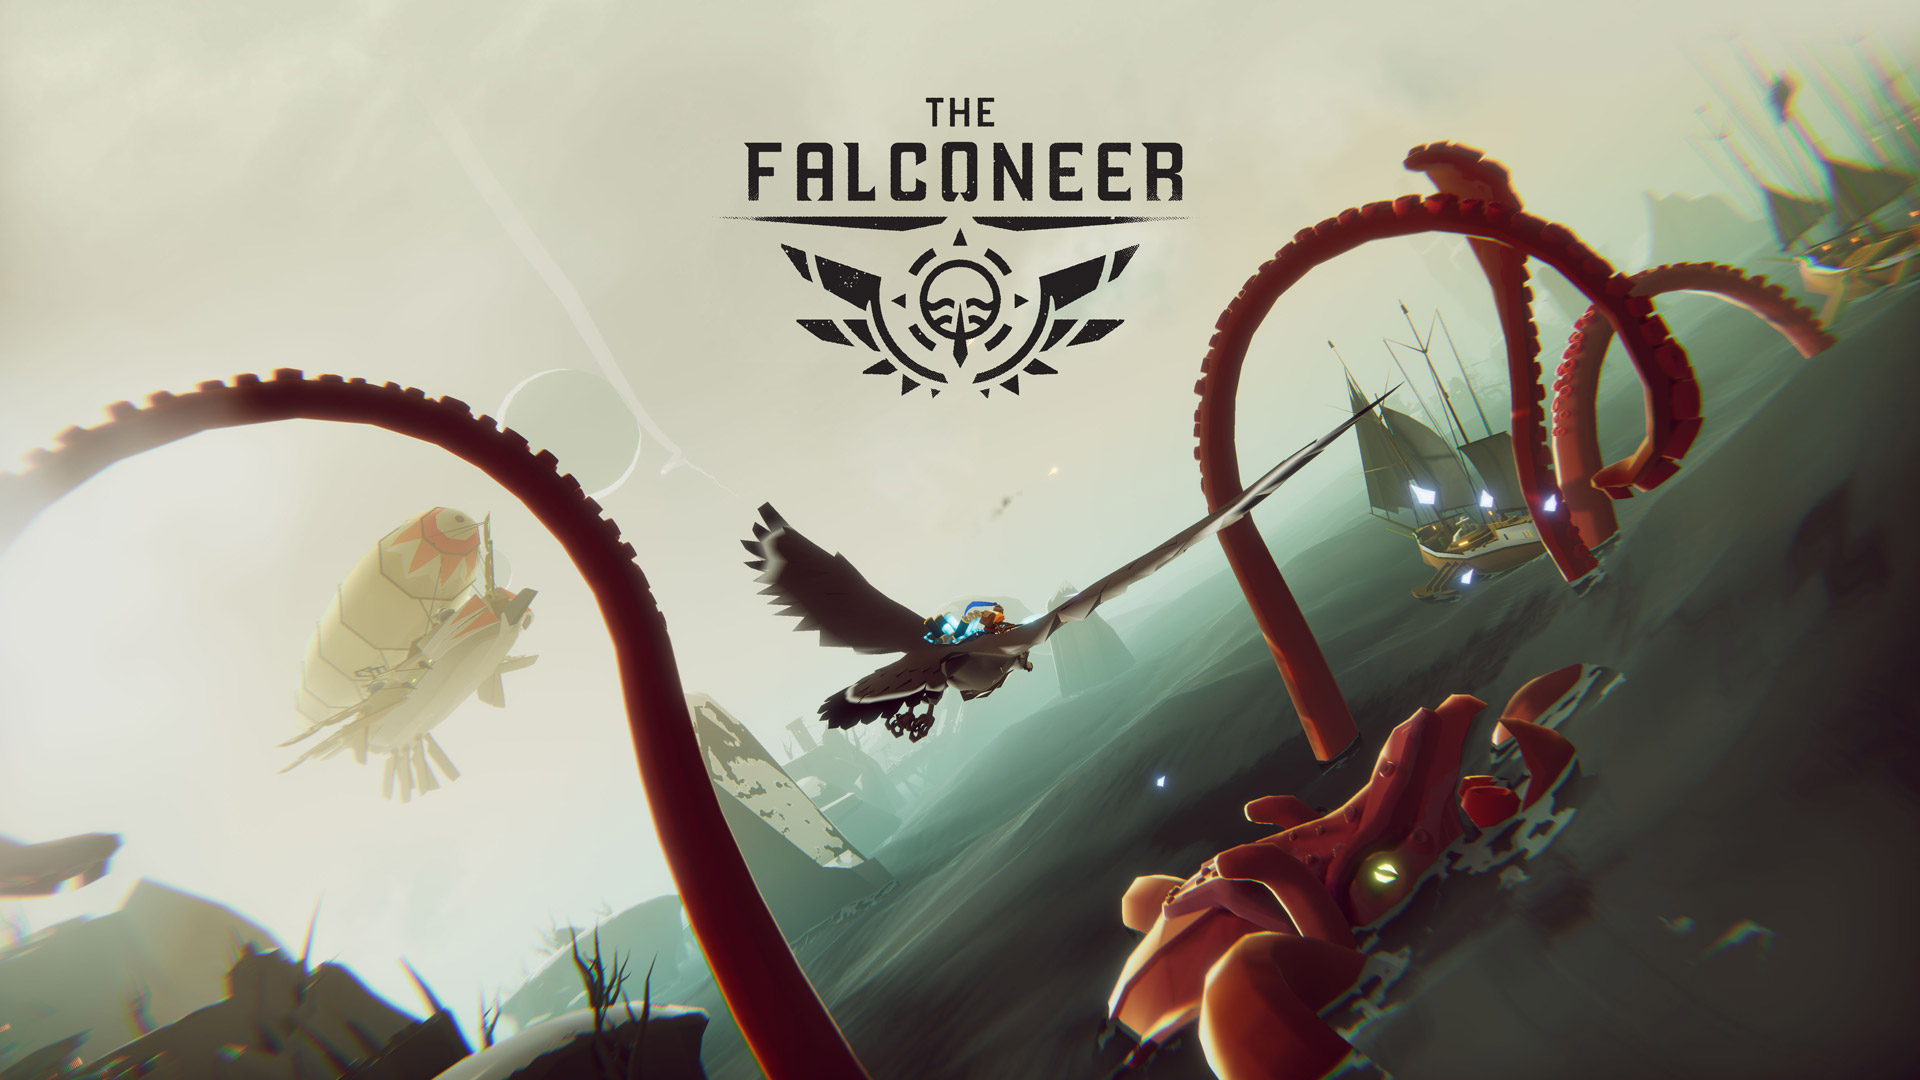 Free The Falconeer Wallpaper in 1920x1080